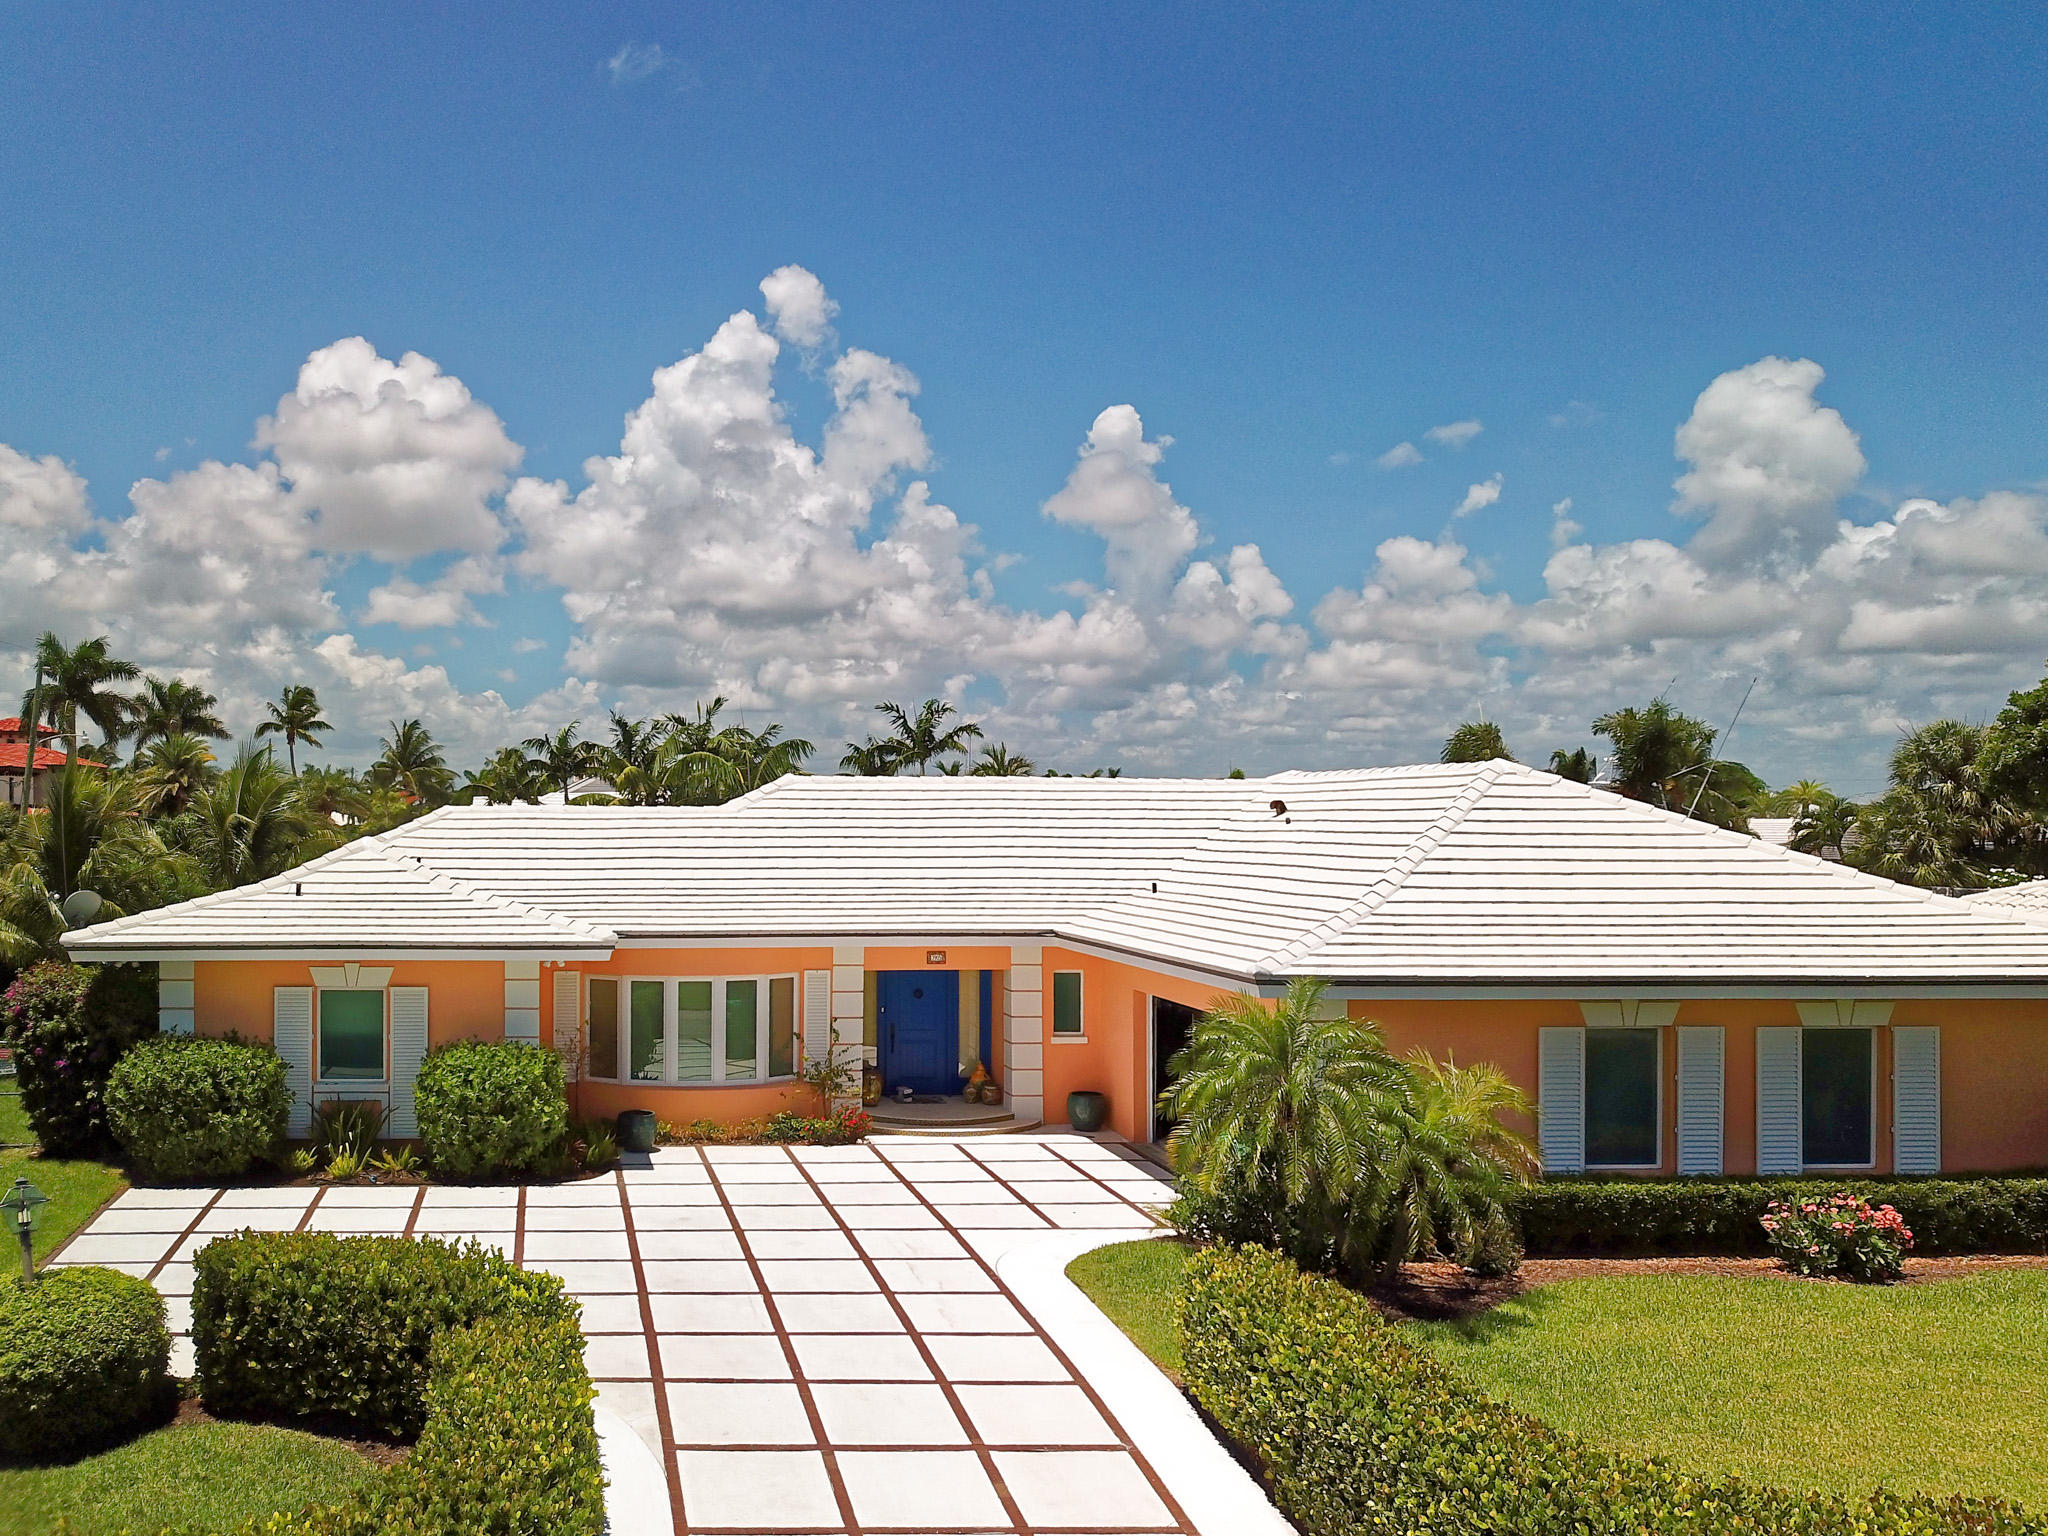 New Home for sale at 3905 Sunset Lane in Singer Island